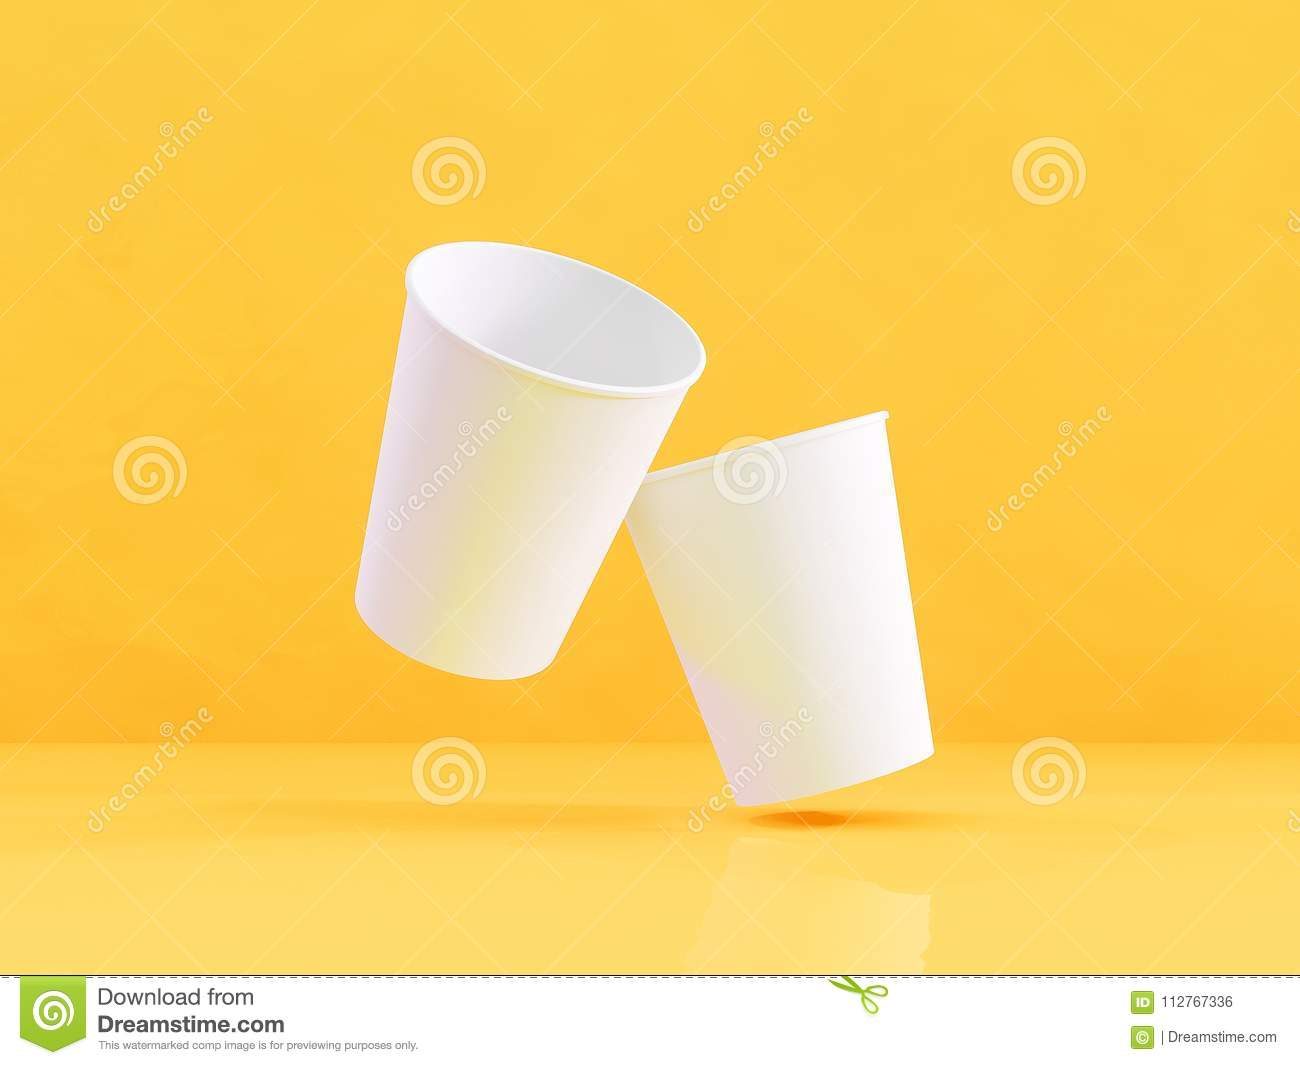 124c6adb225 3d model of paper cups on the plane under natural light. Yellow background.  3d renderer.